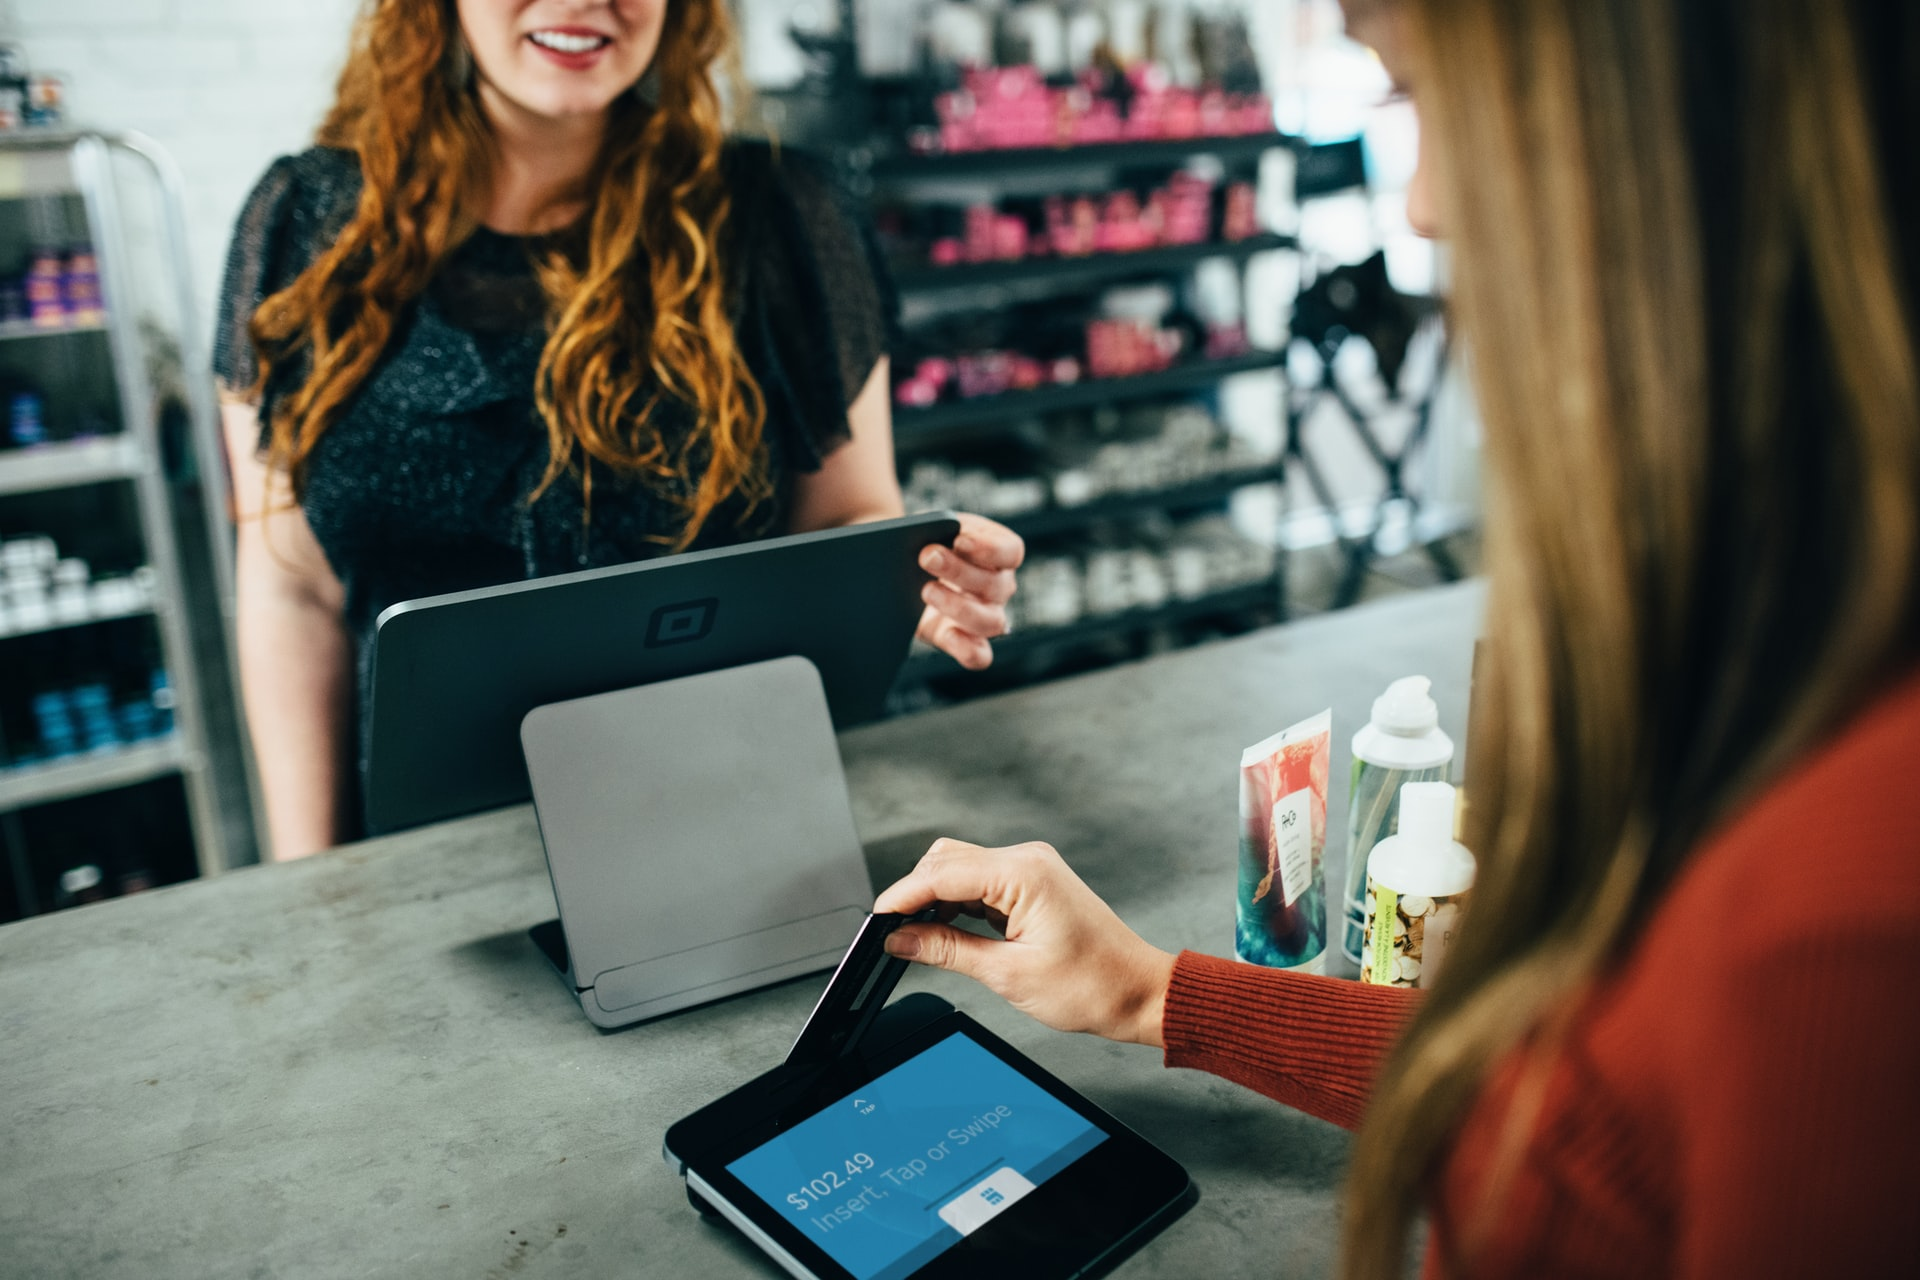 image of shopper paying for beauty products with a credit card machine